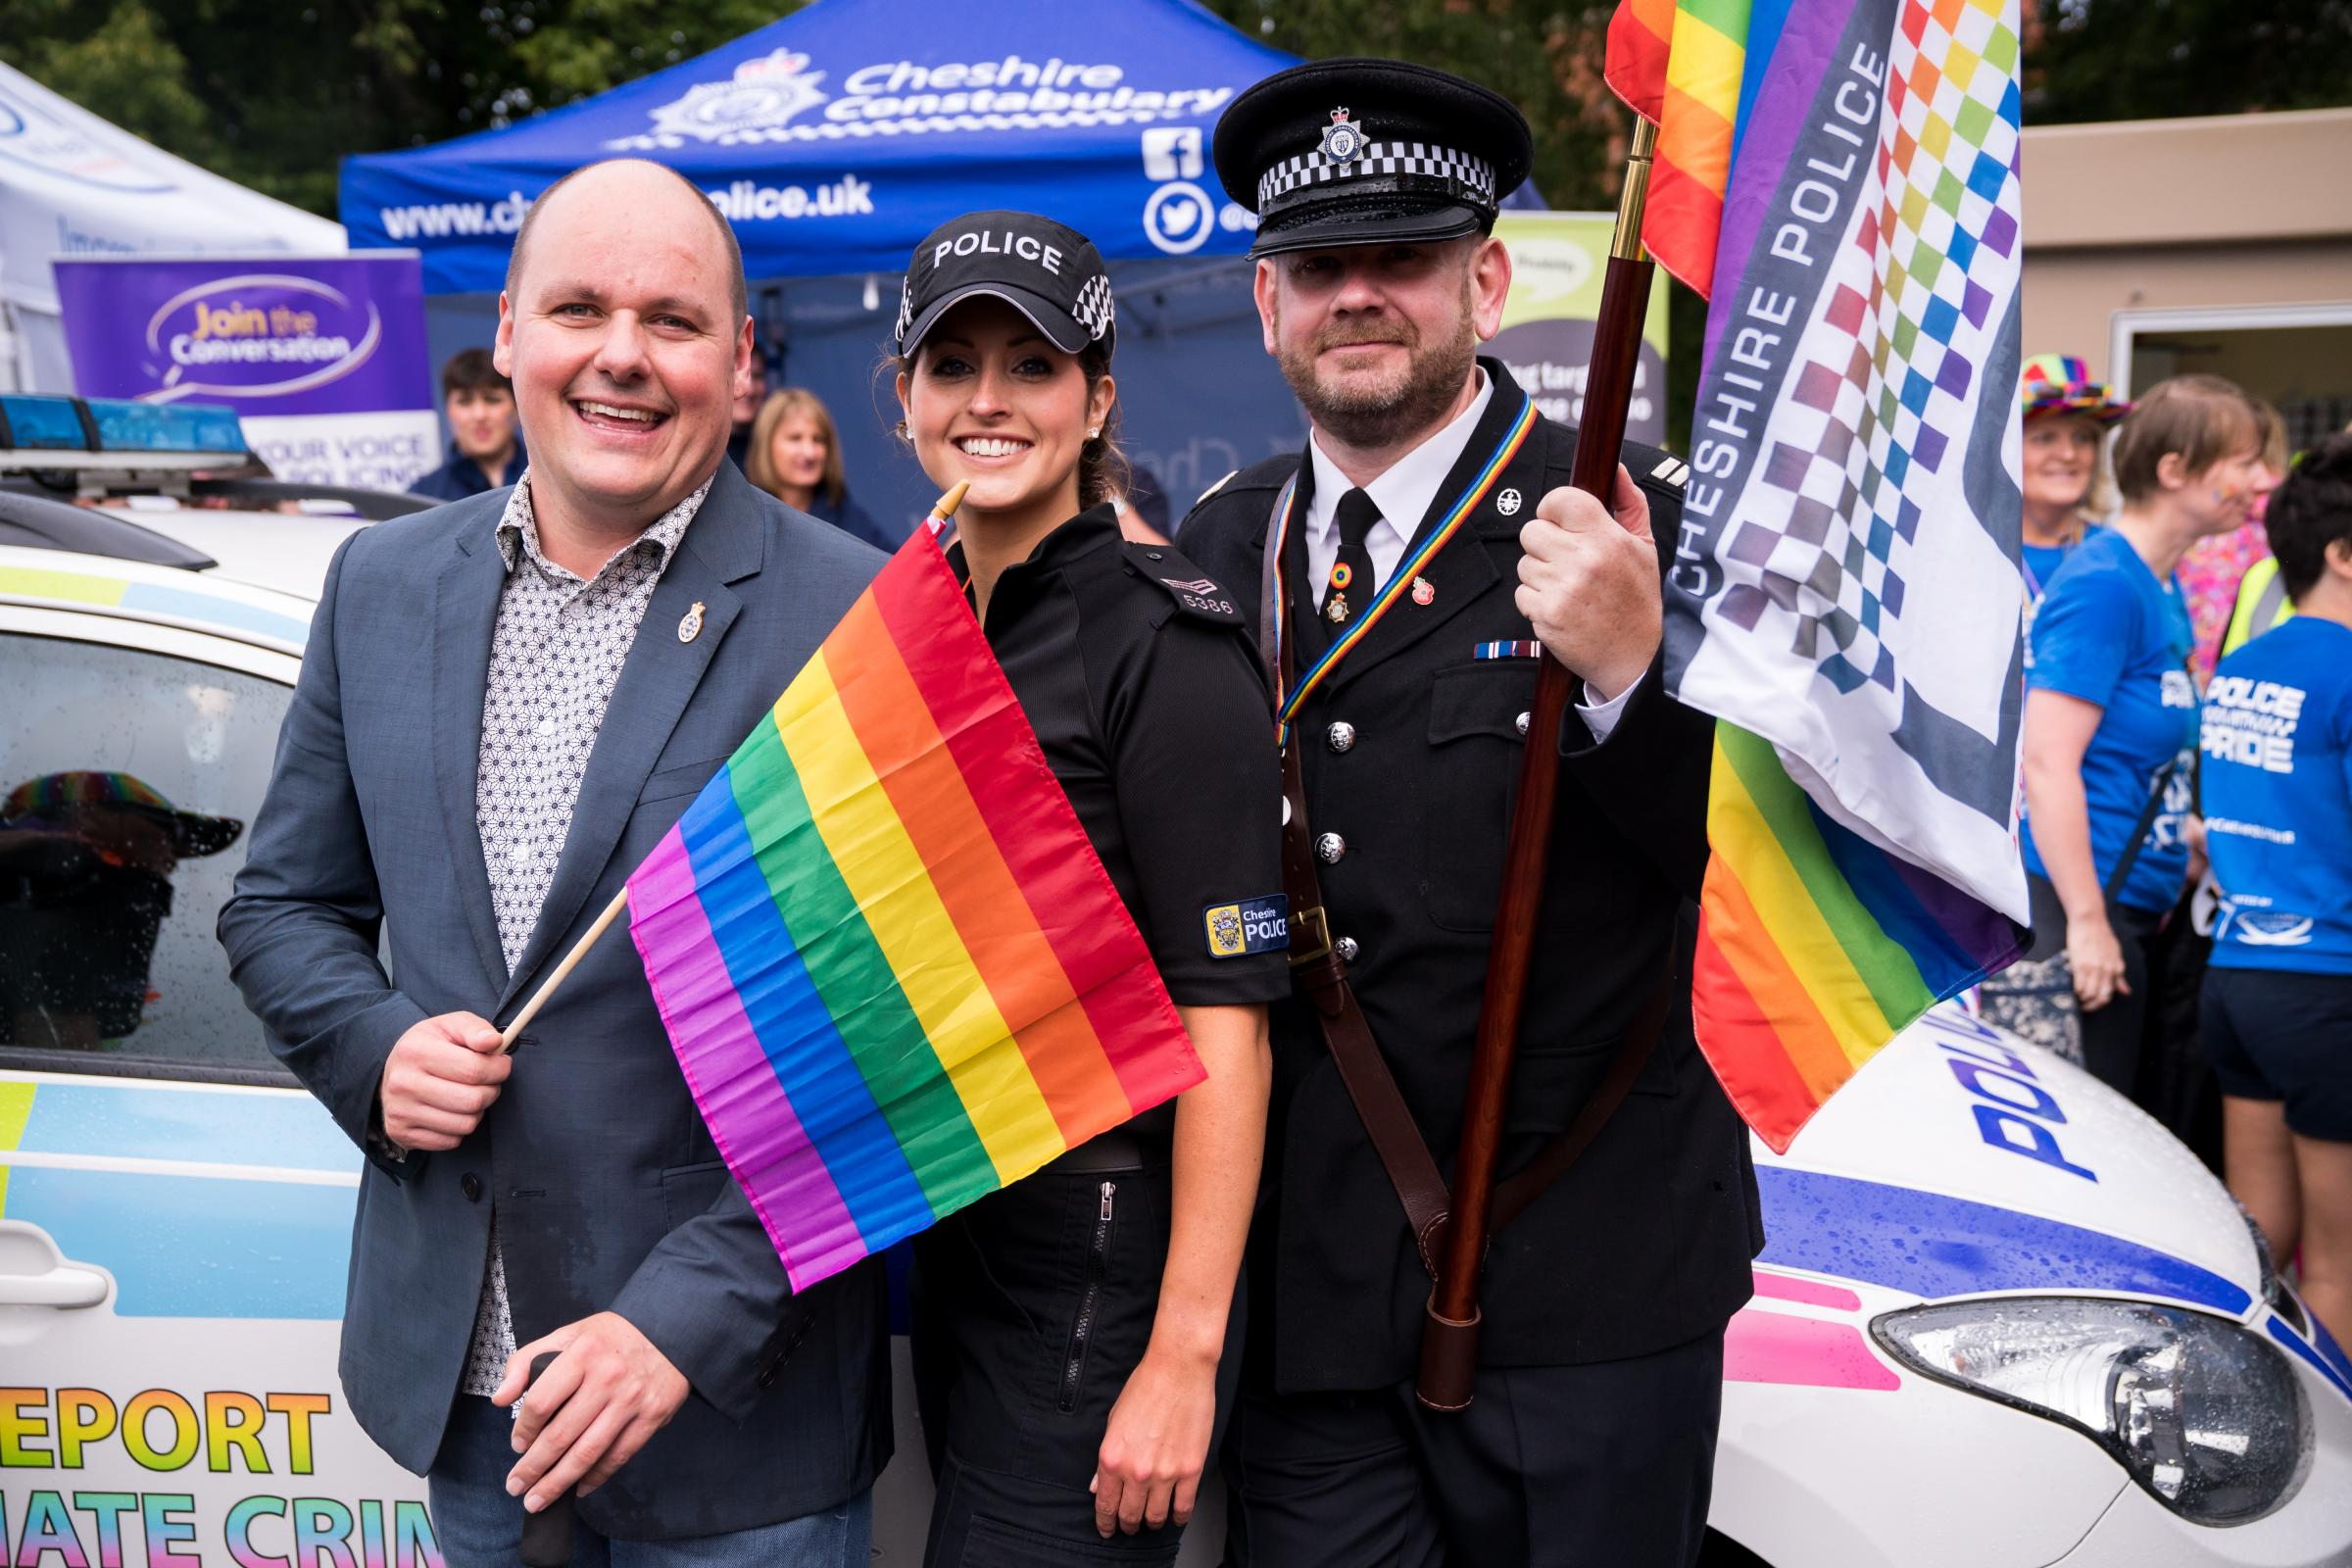 PCC David Keane with Cheshire Police officers at the 2017 Chester Pride event